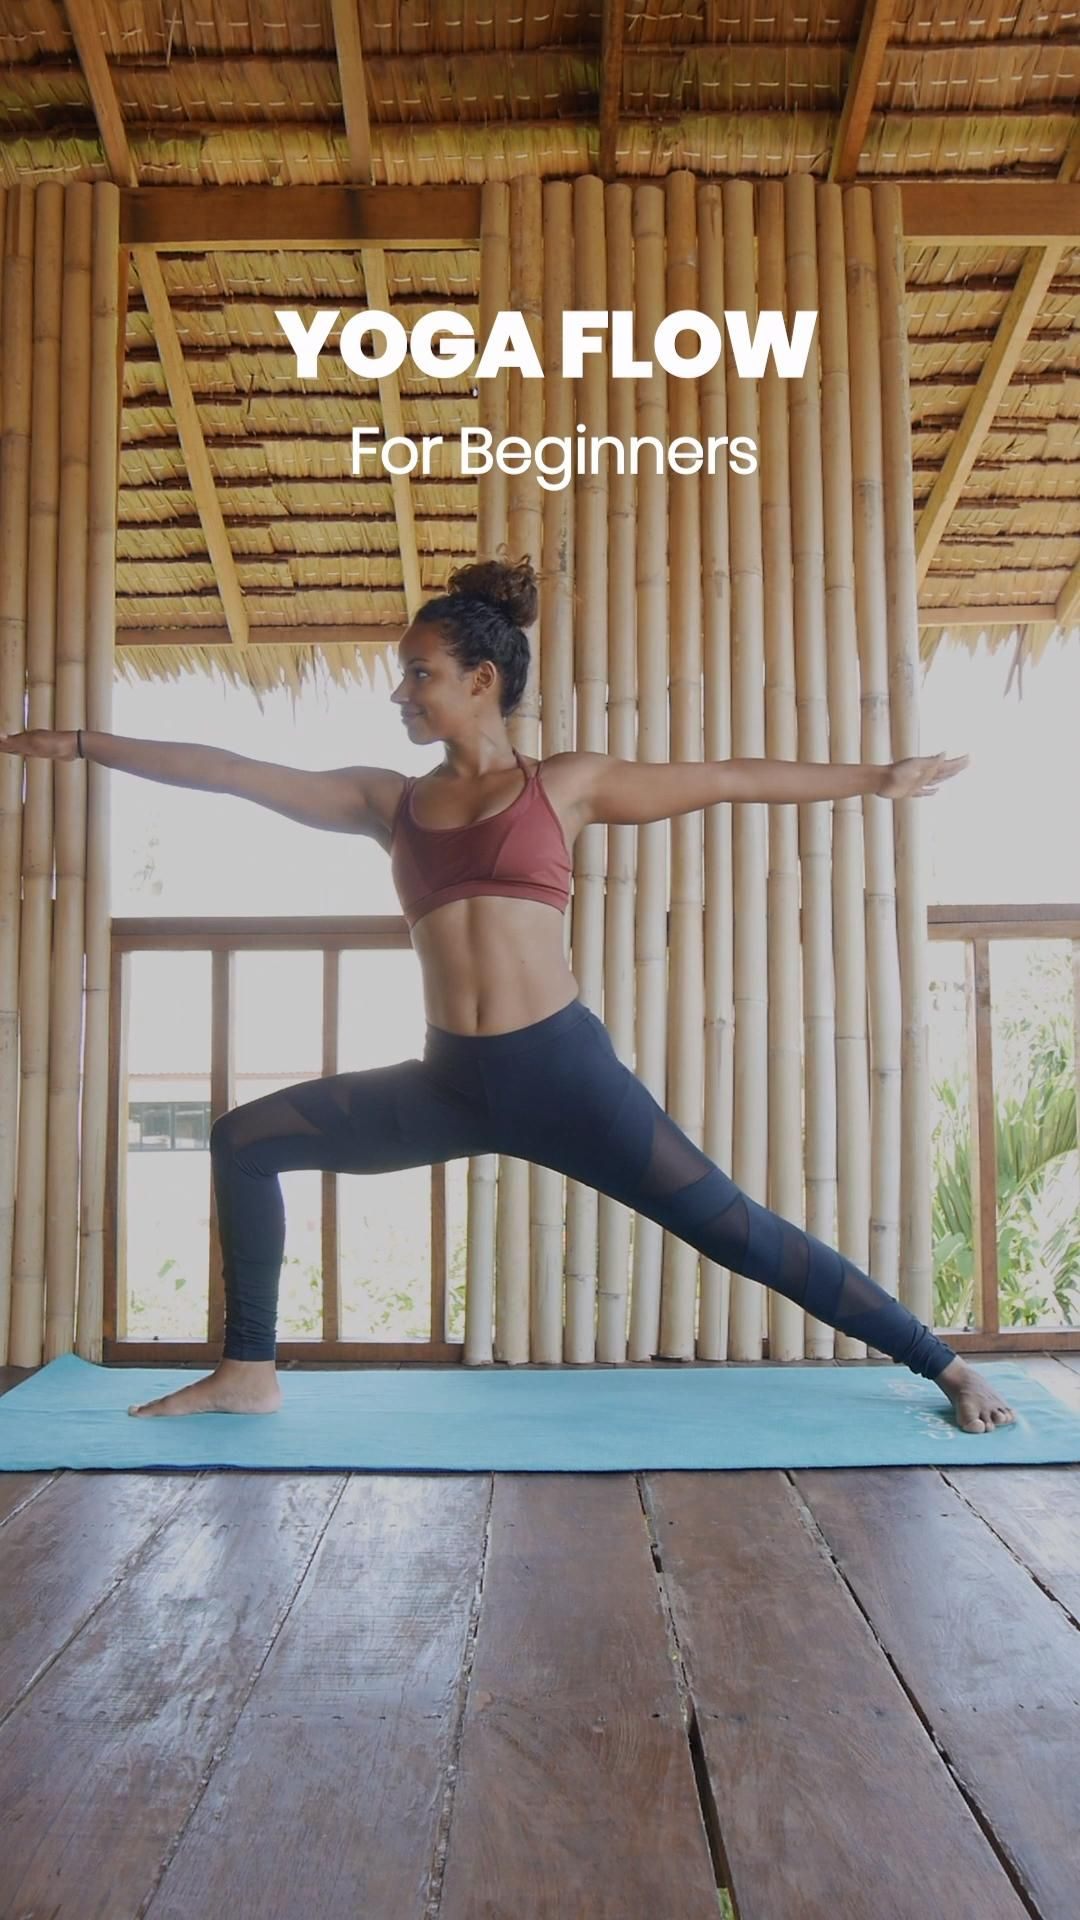 Yoga for Beginners: Easy 5 min Routine